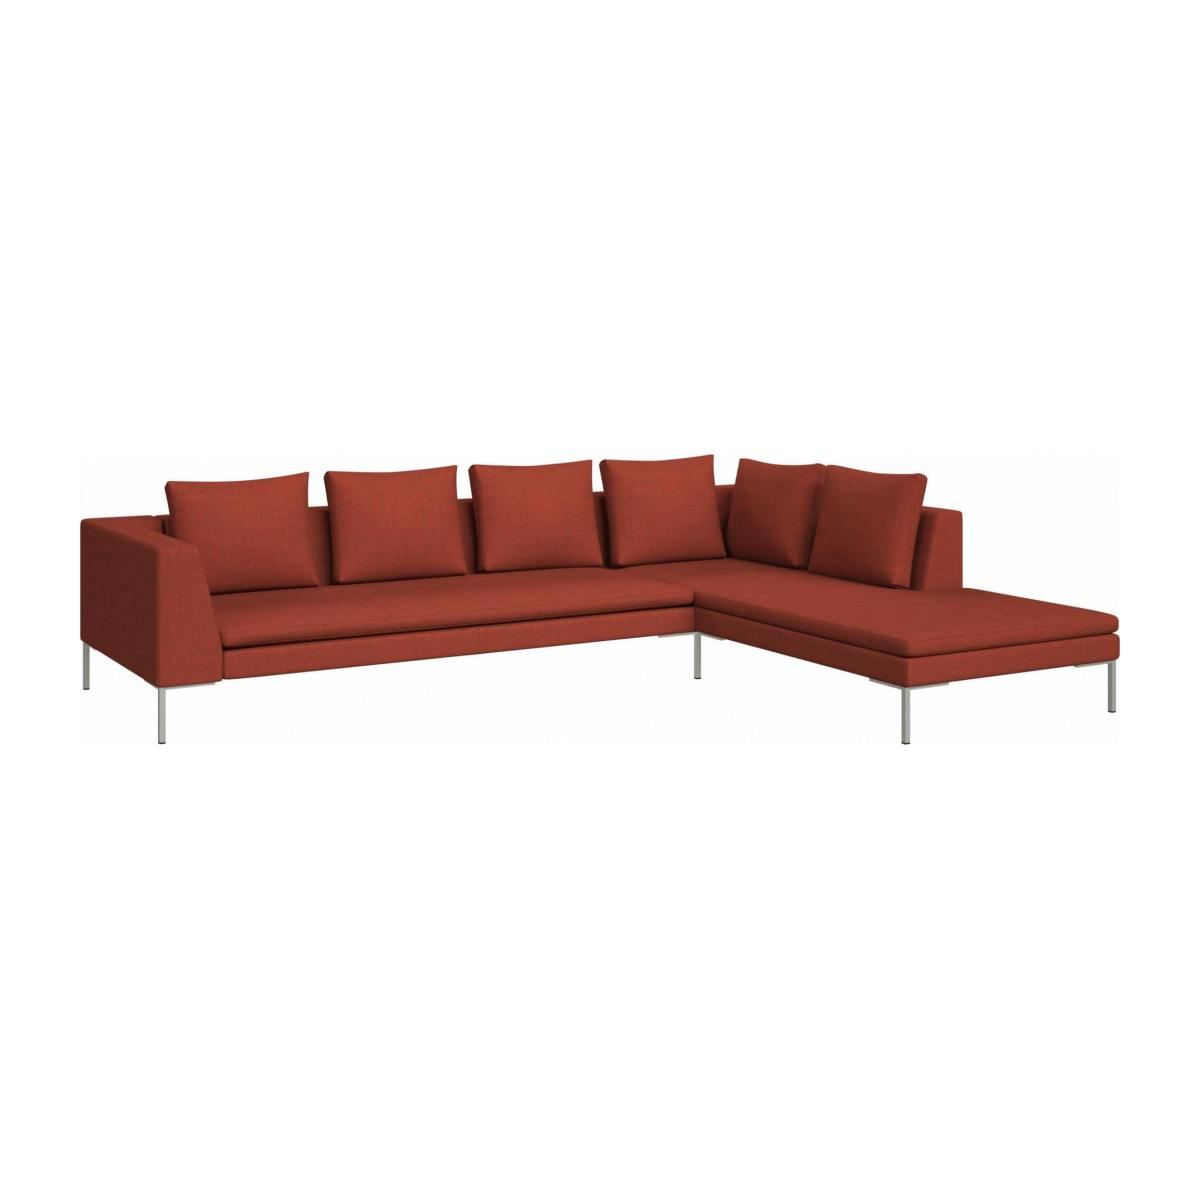 3 seater sofa with chaise longue on the right in Fasoli fabric, warm red rock  n°2